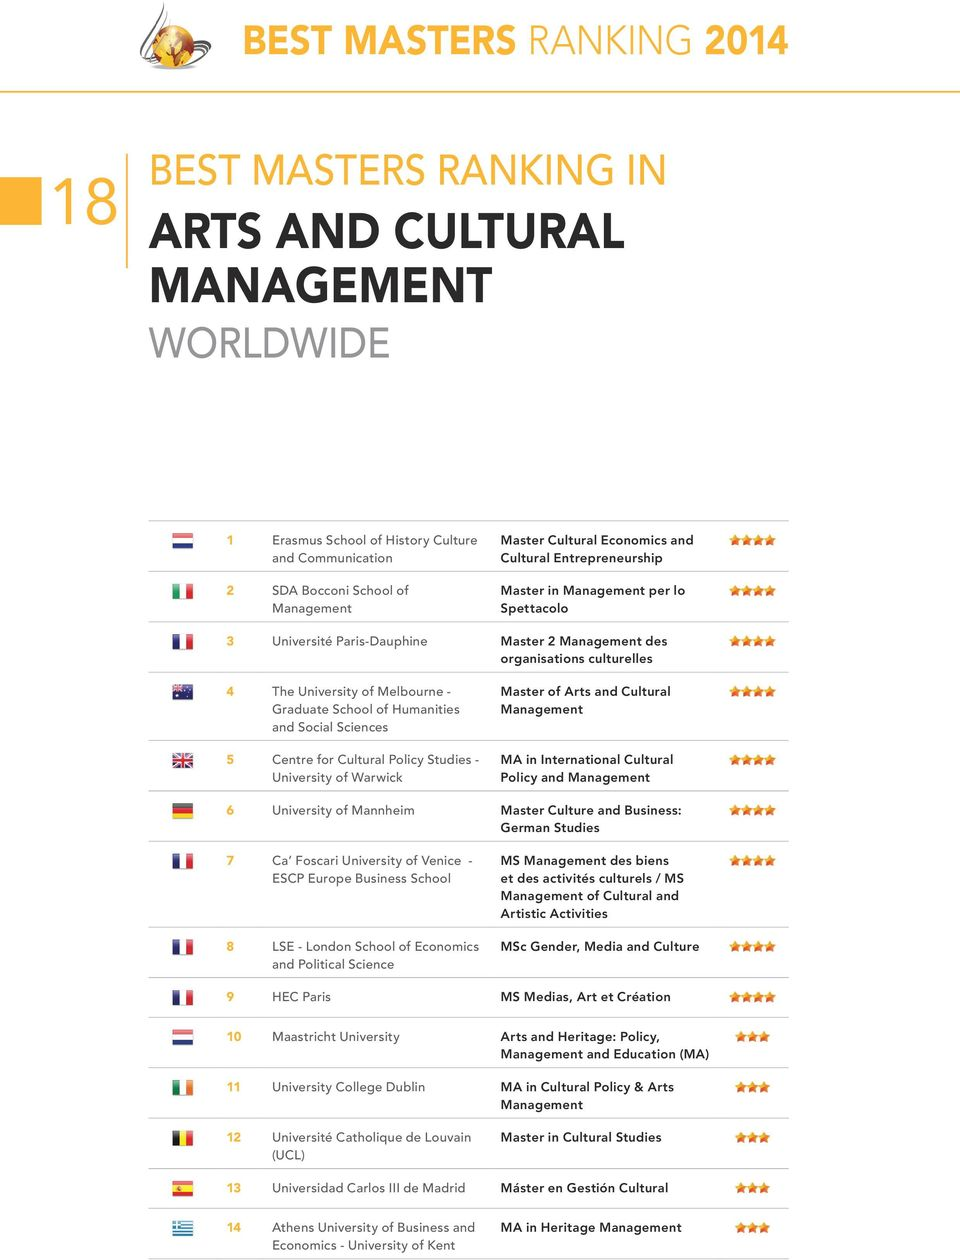 Sciences 5 Centre for Cultural Policy Studies - University of Warwick Master of Arts and Cultural MA in International Cultural Policy and 6 University of Mannheim Master Culture and Business: German